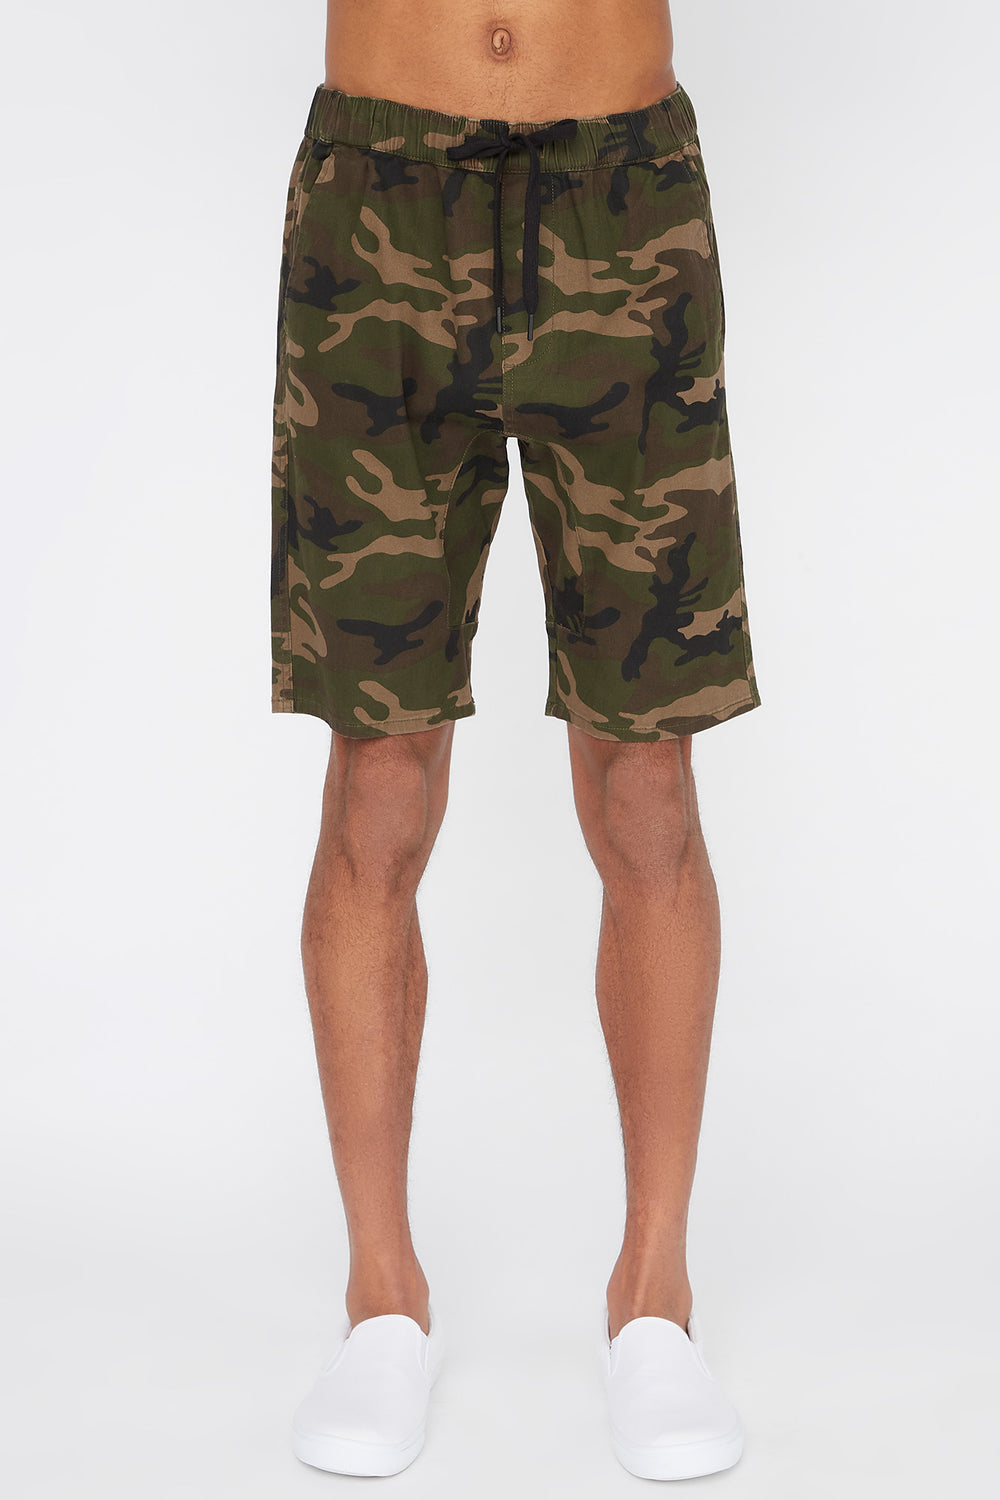 West49 Mens Camo Jogger Short Camouflage